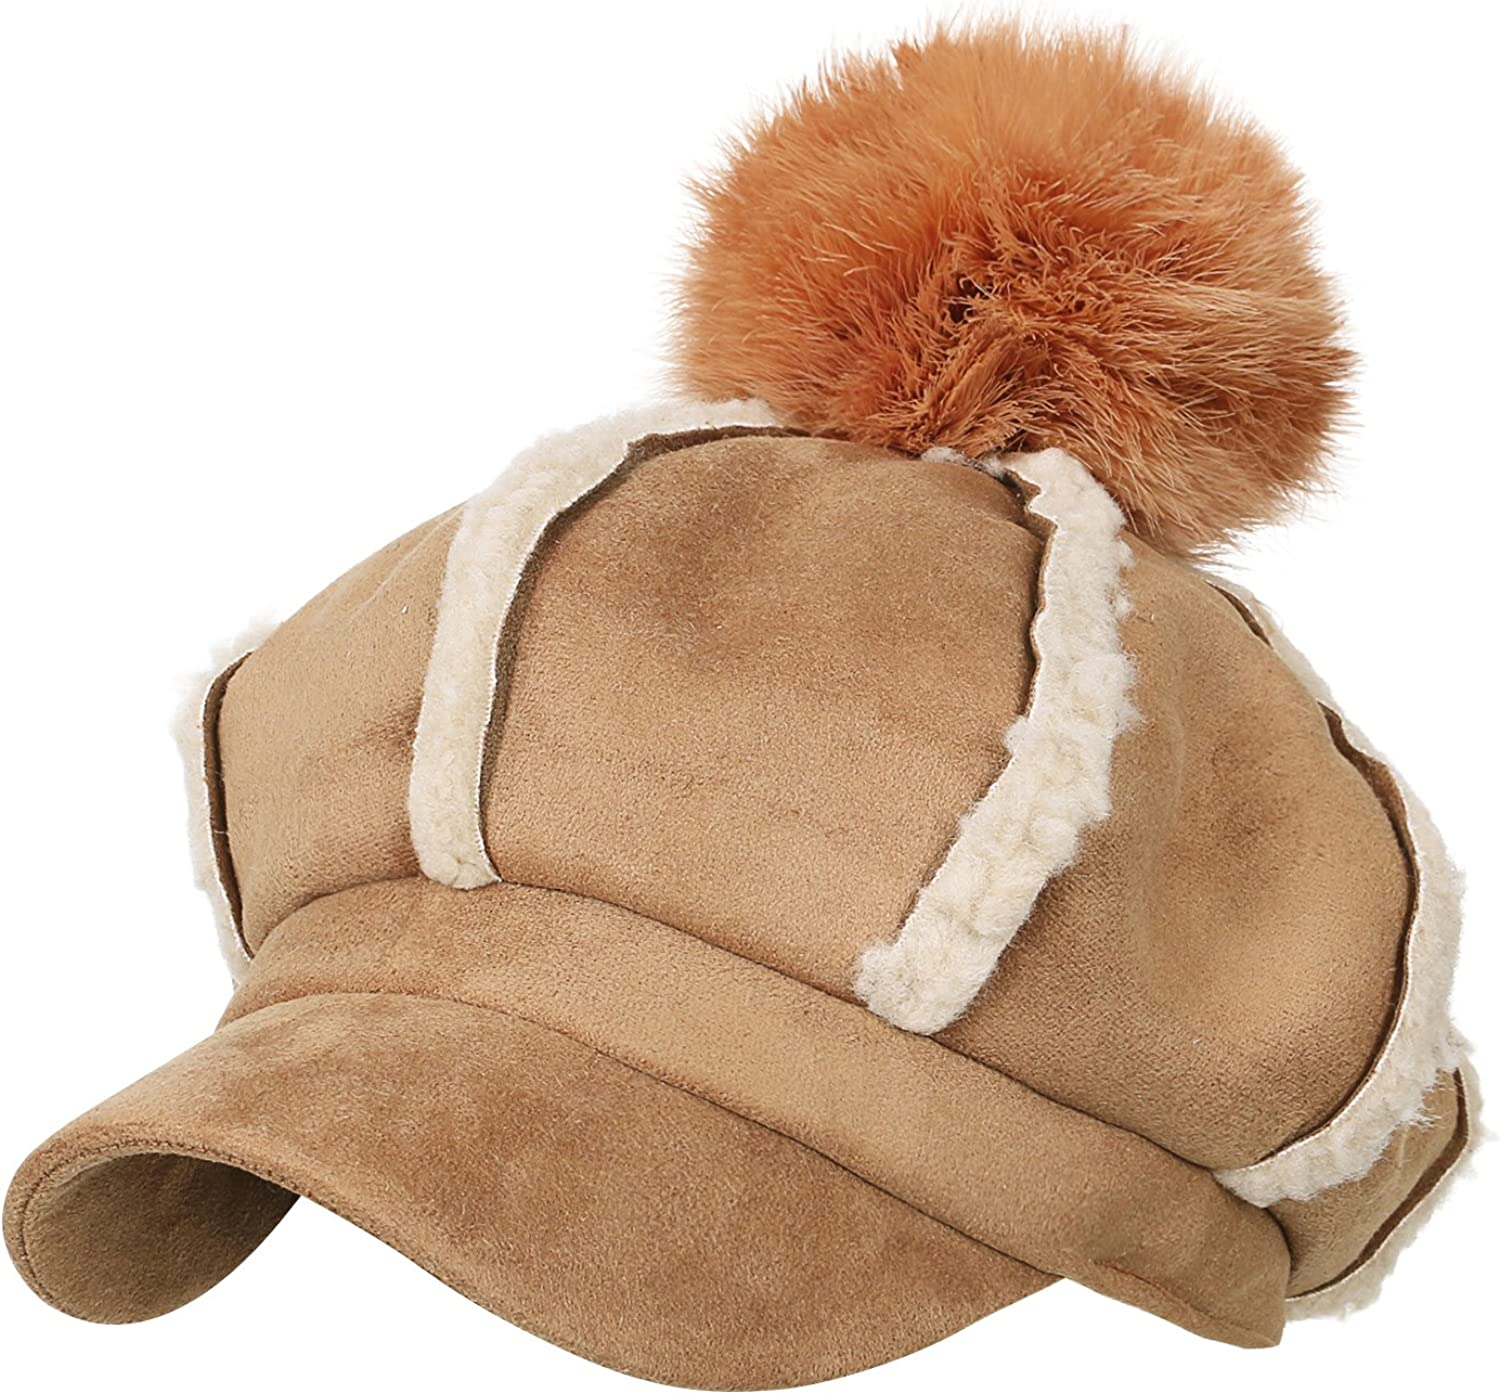 Ililily 8Pannel Solid color Newsboy Cabbie Cap Suede Duck Bill Flat Hunting Hat